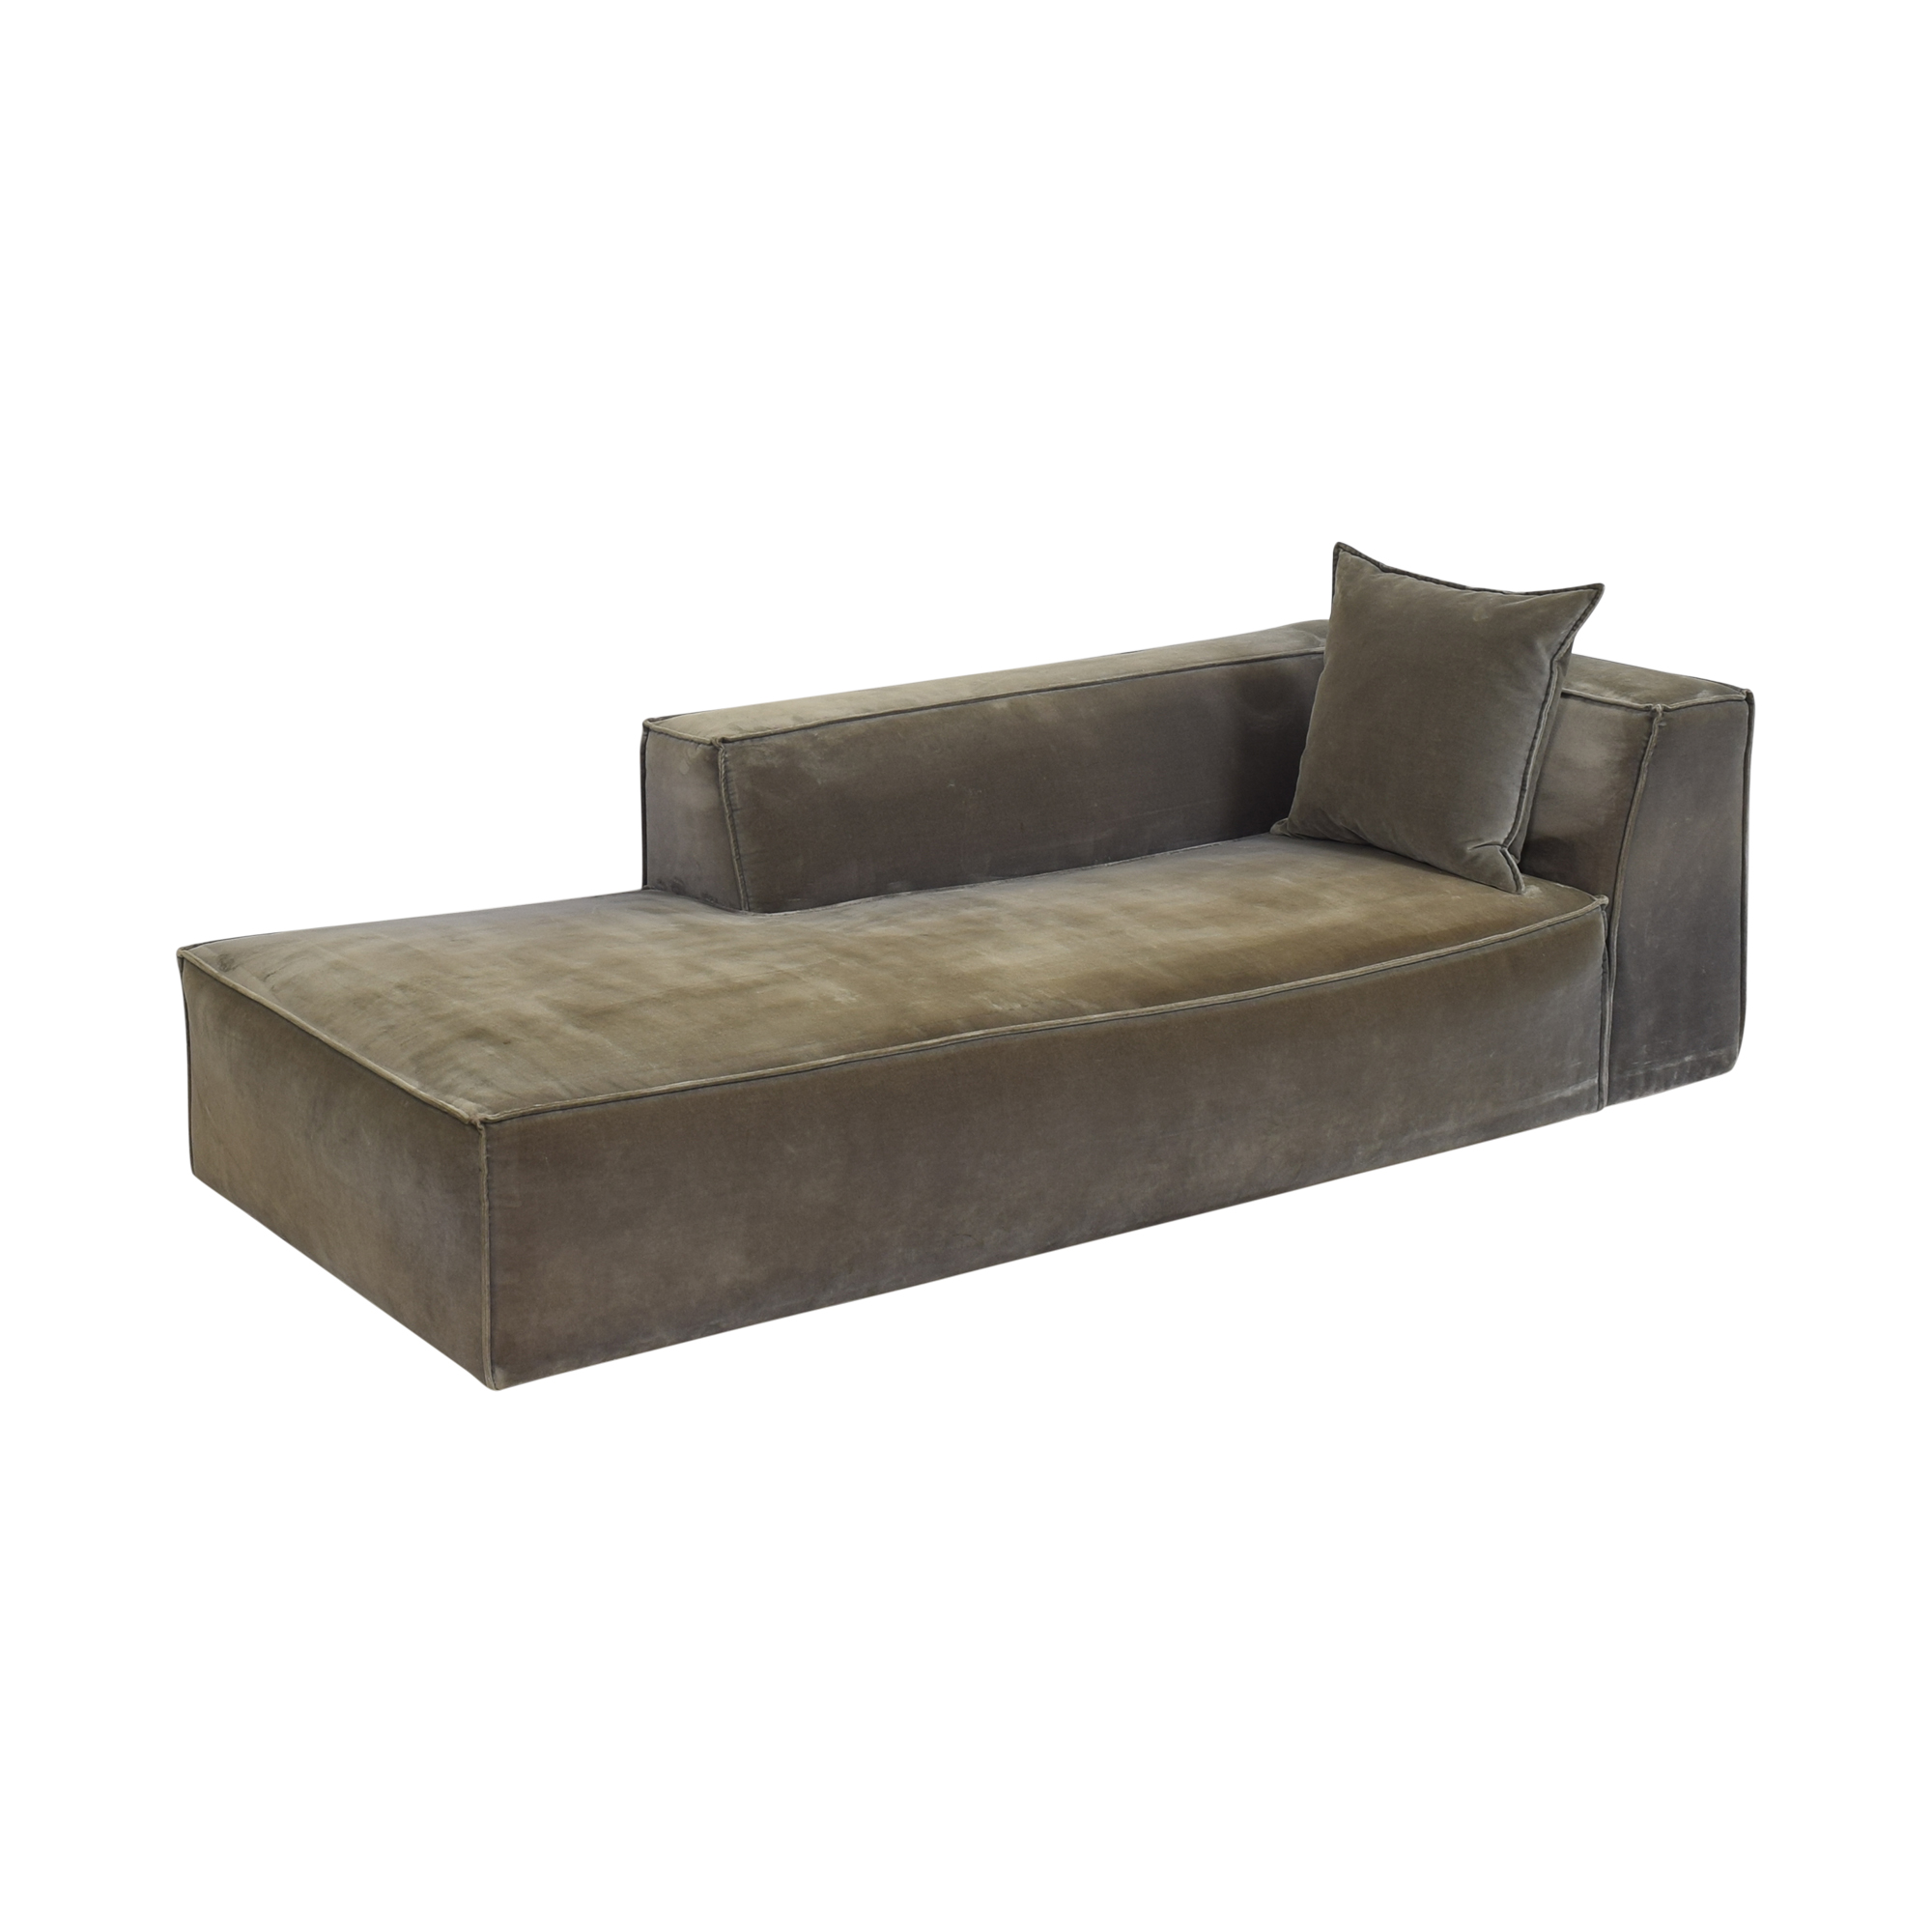 Nathan Anthony Nathan Anthony Chaise Lounge ma